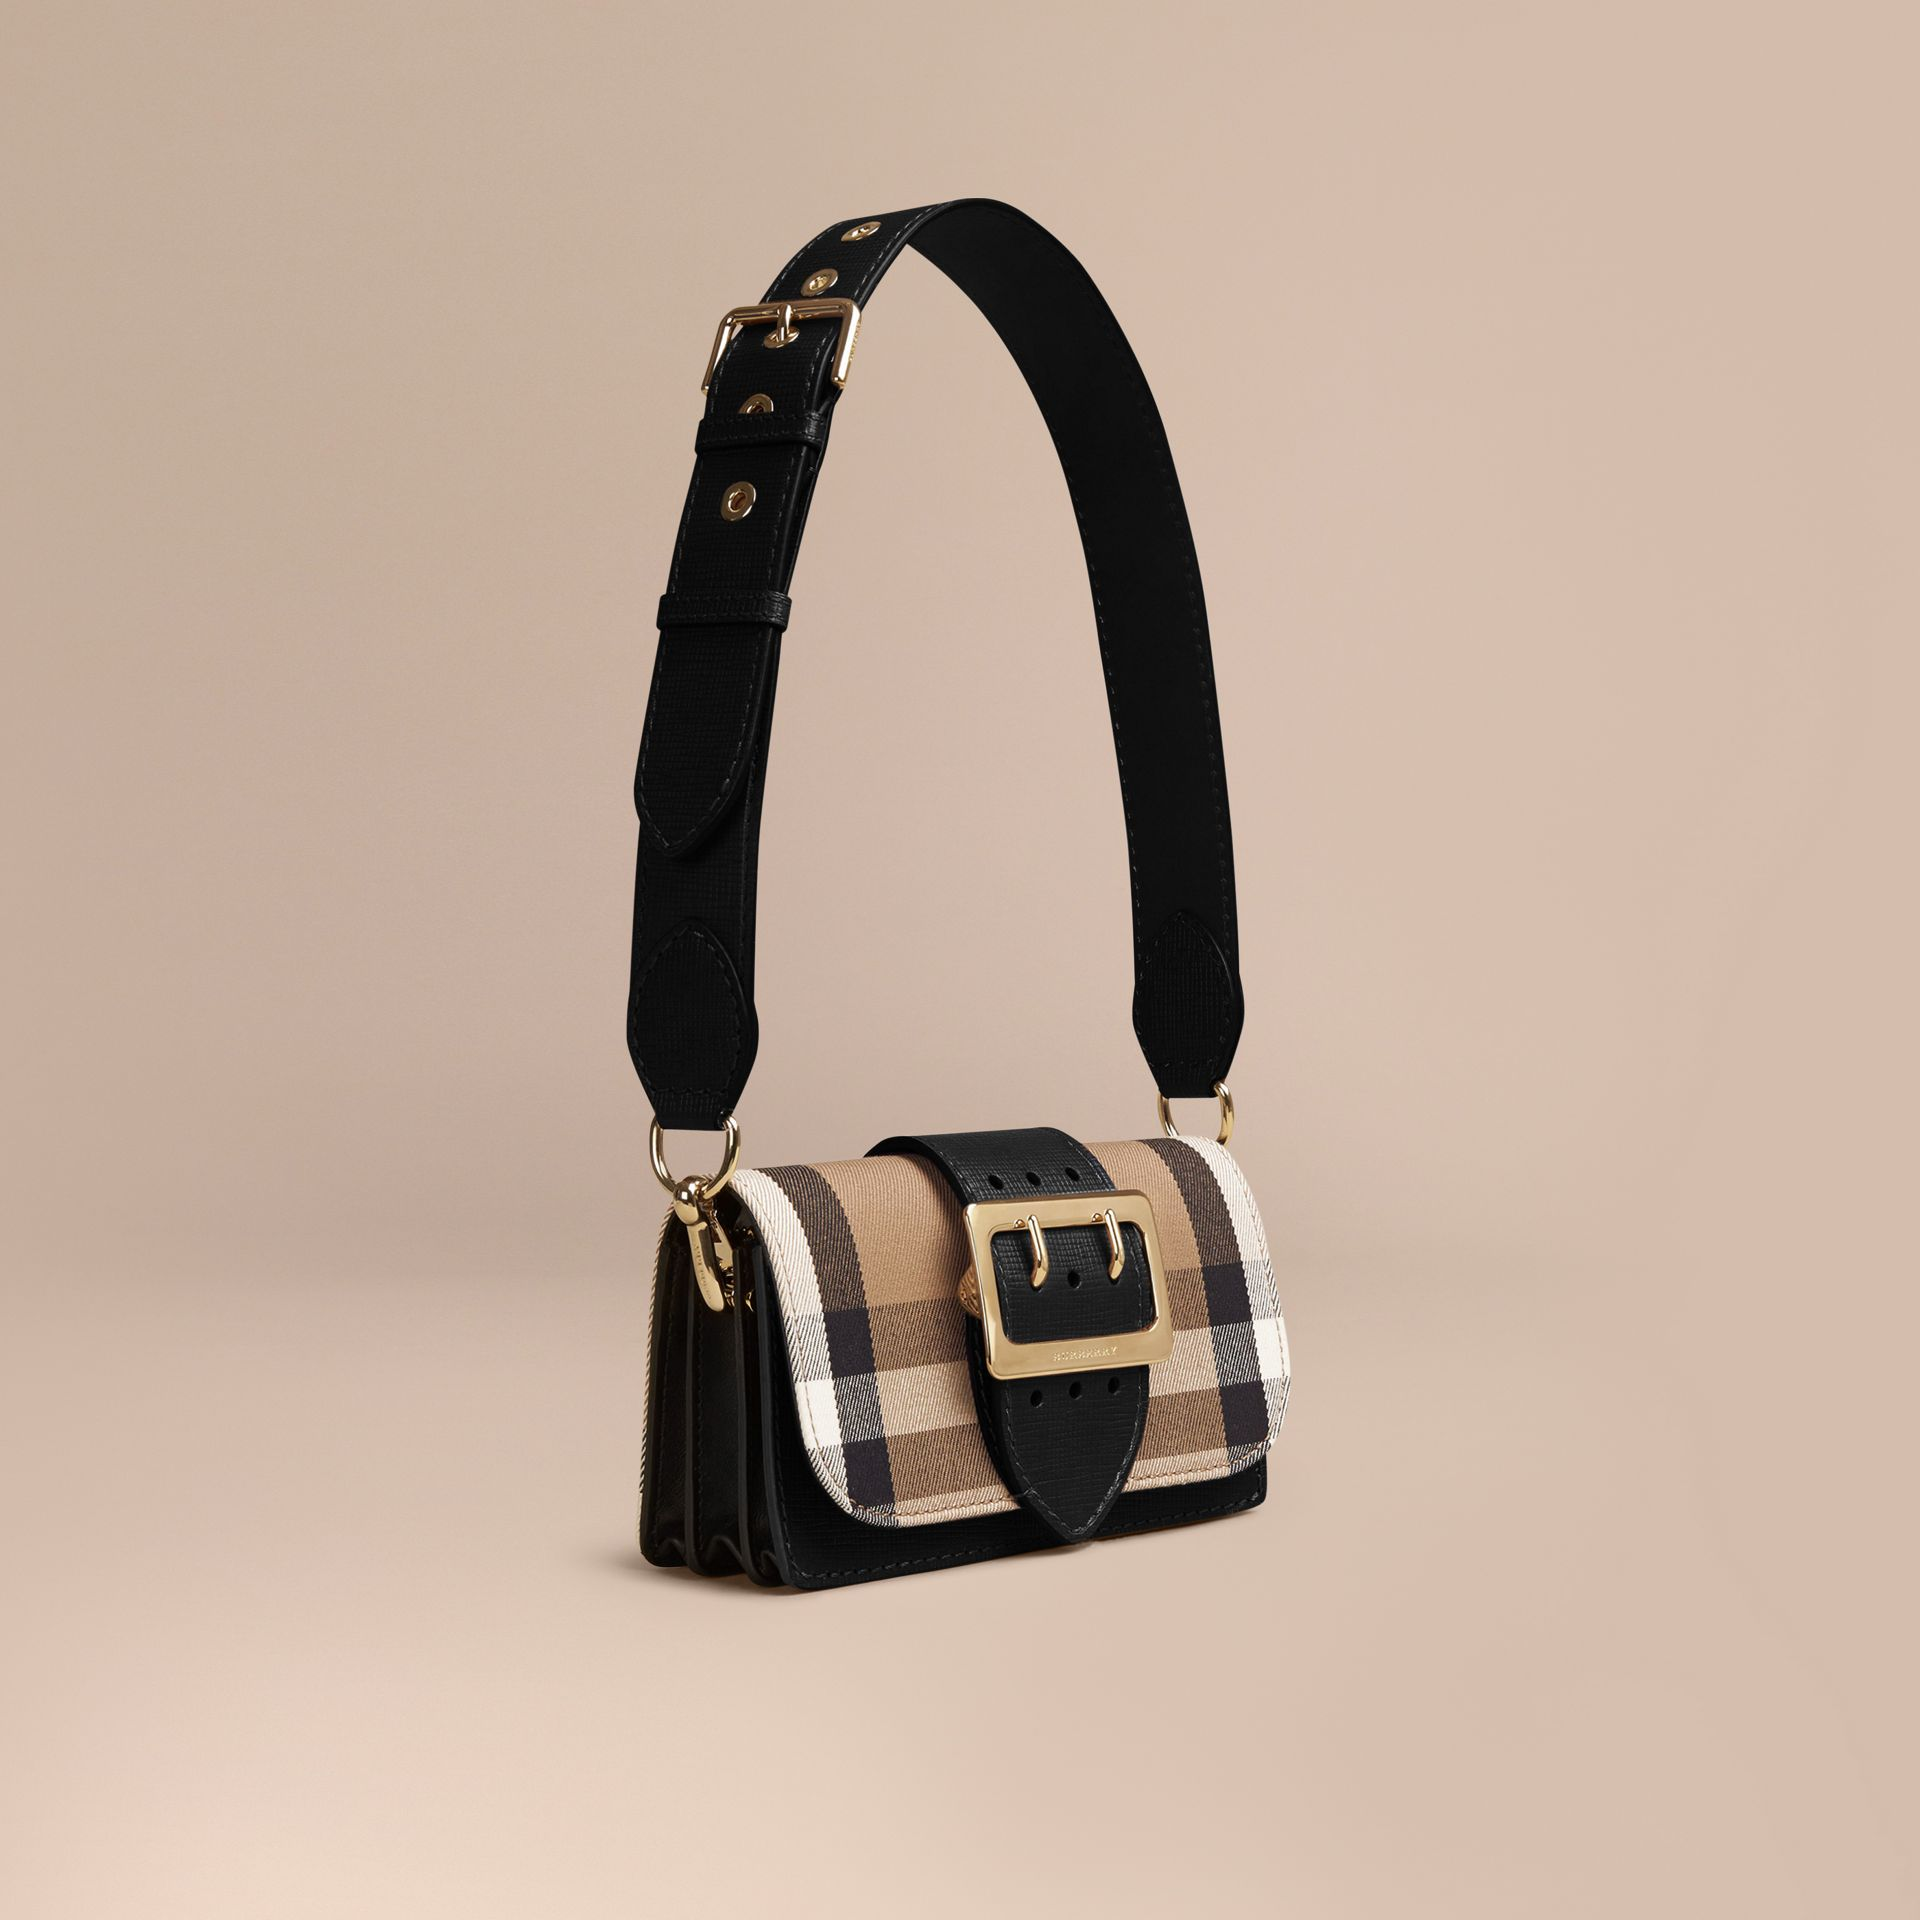 Noir Petit sac The Buckle en coton House check et cuir Noir - photo de la galerie 1